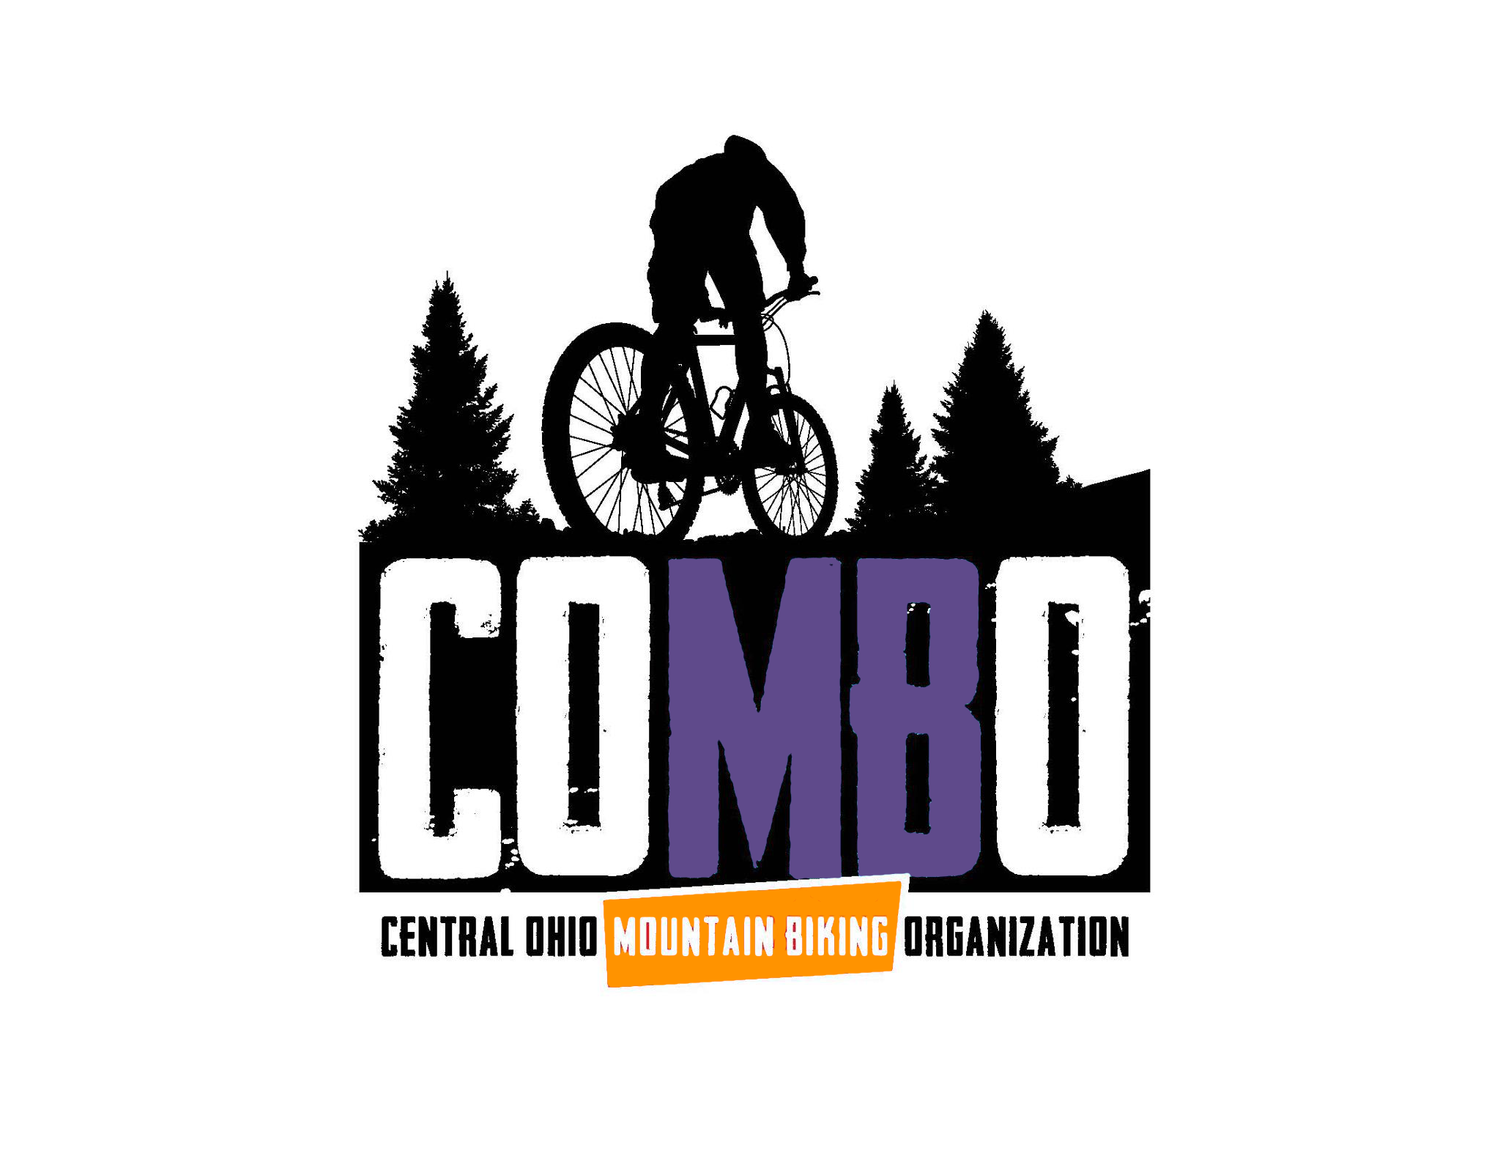 Central Ohio Mountain Biking Organization Project Supporter and Volunteer Organizer